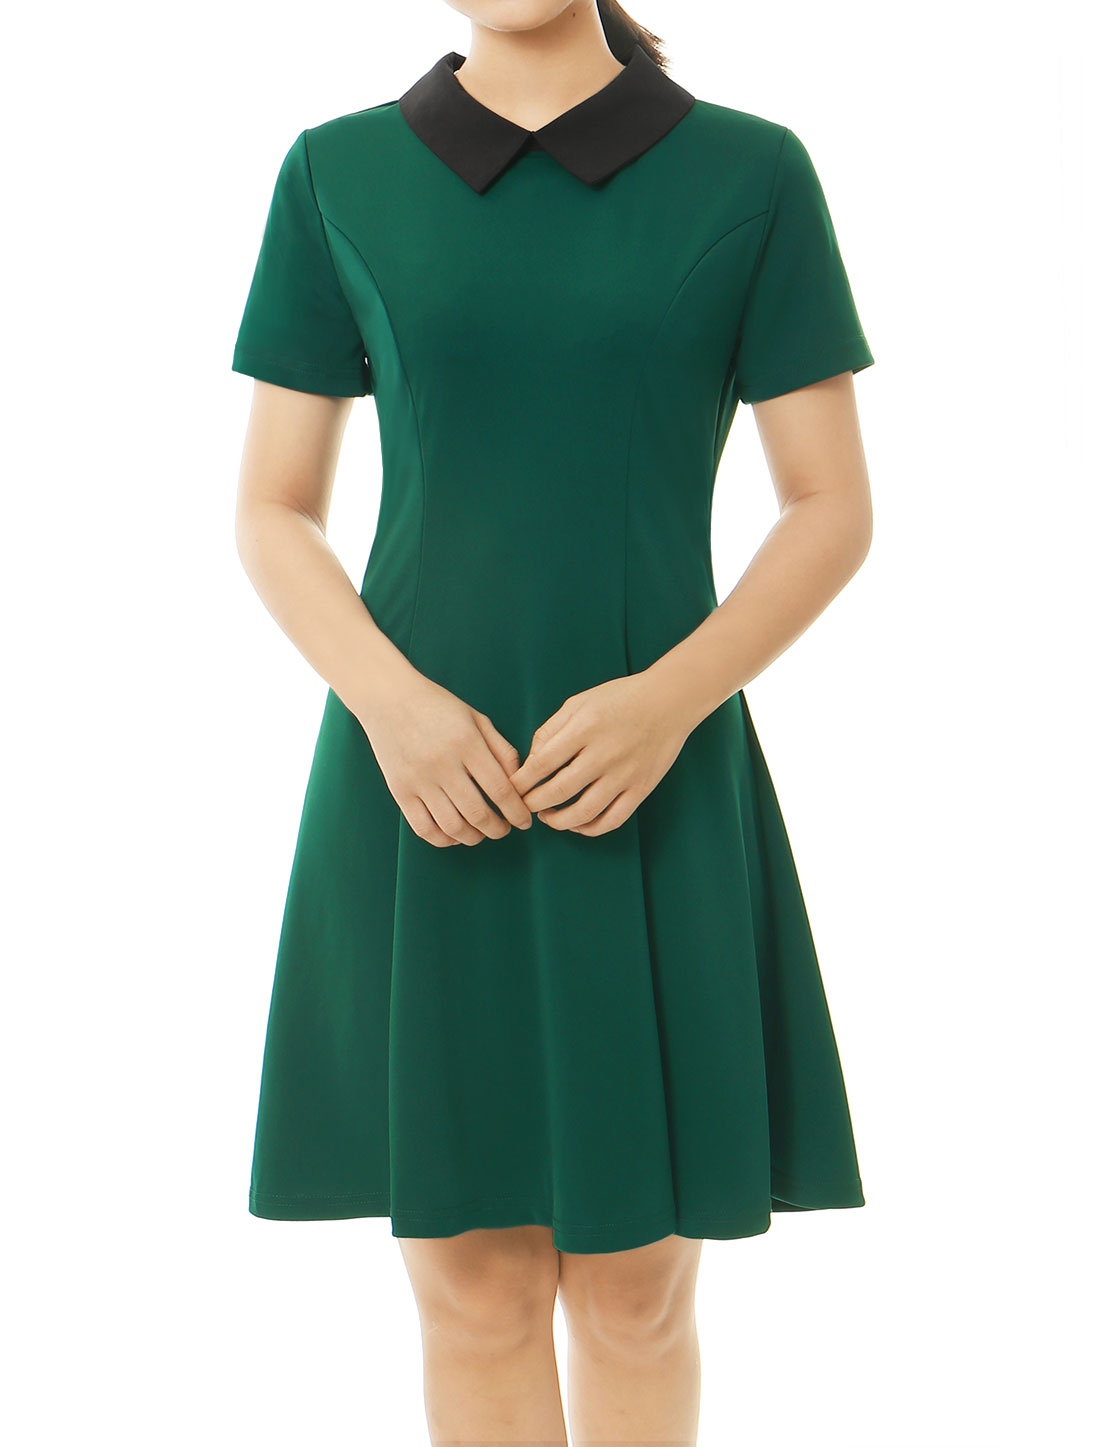 Women Contrast Doll Collar Short Sleeves Flare Dress Green S